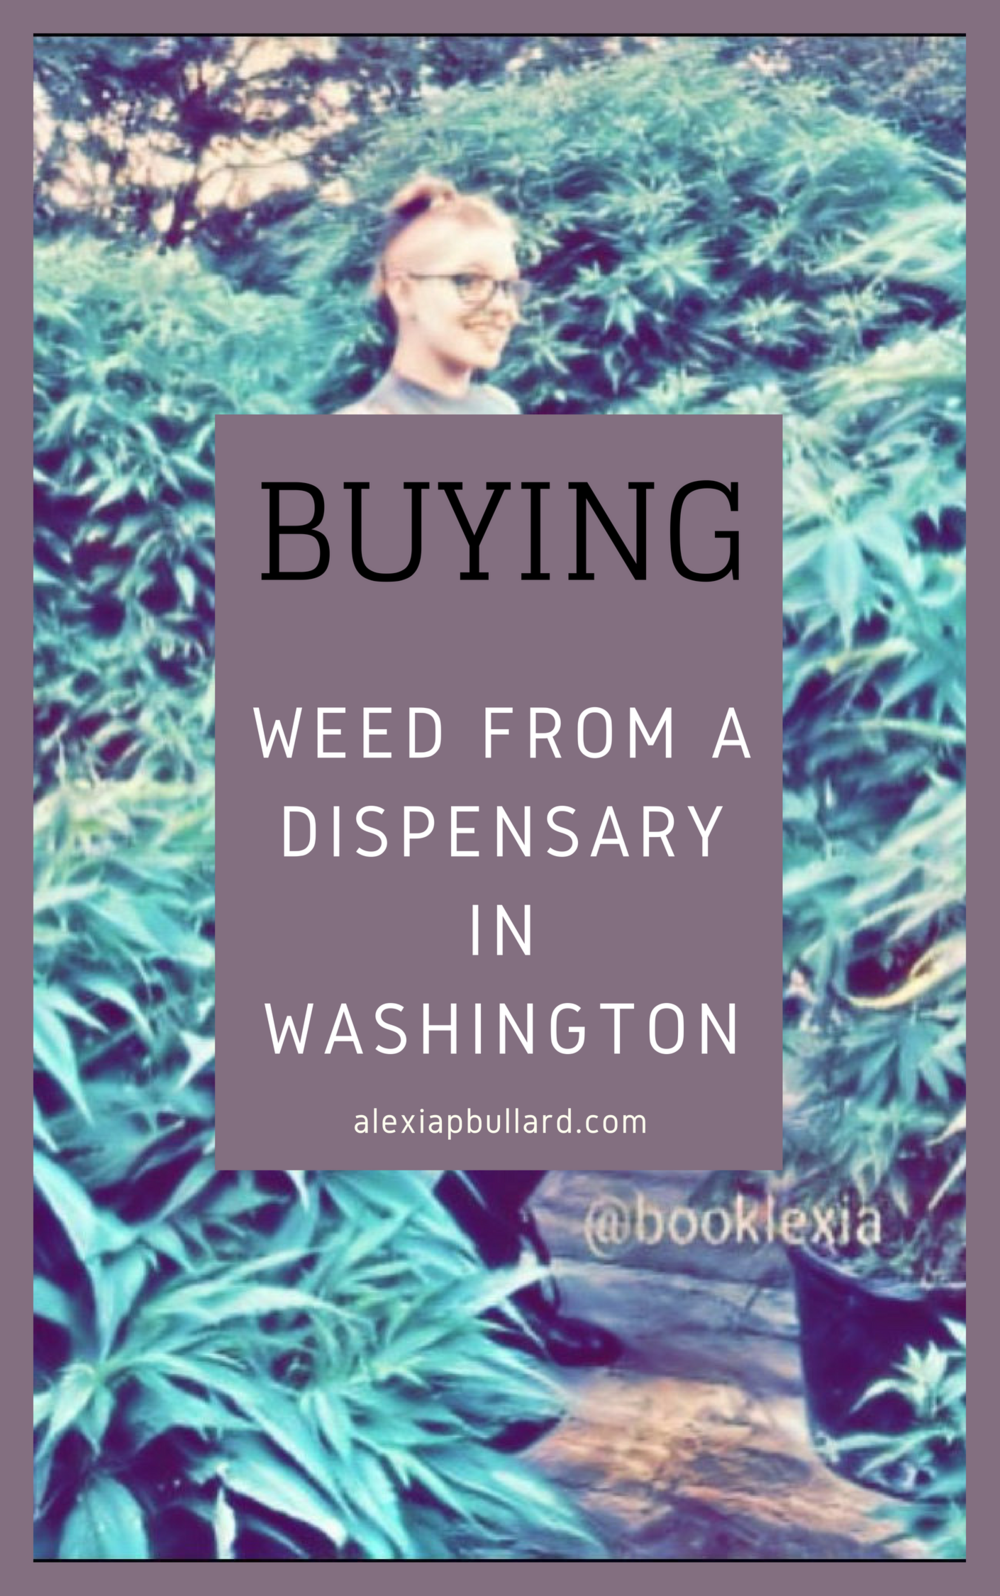 Buying Weed From a Dispensary in Washington || Booklexia Content Marketing